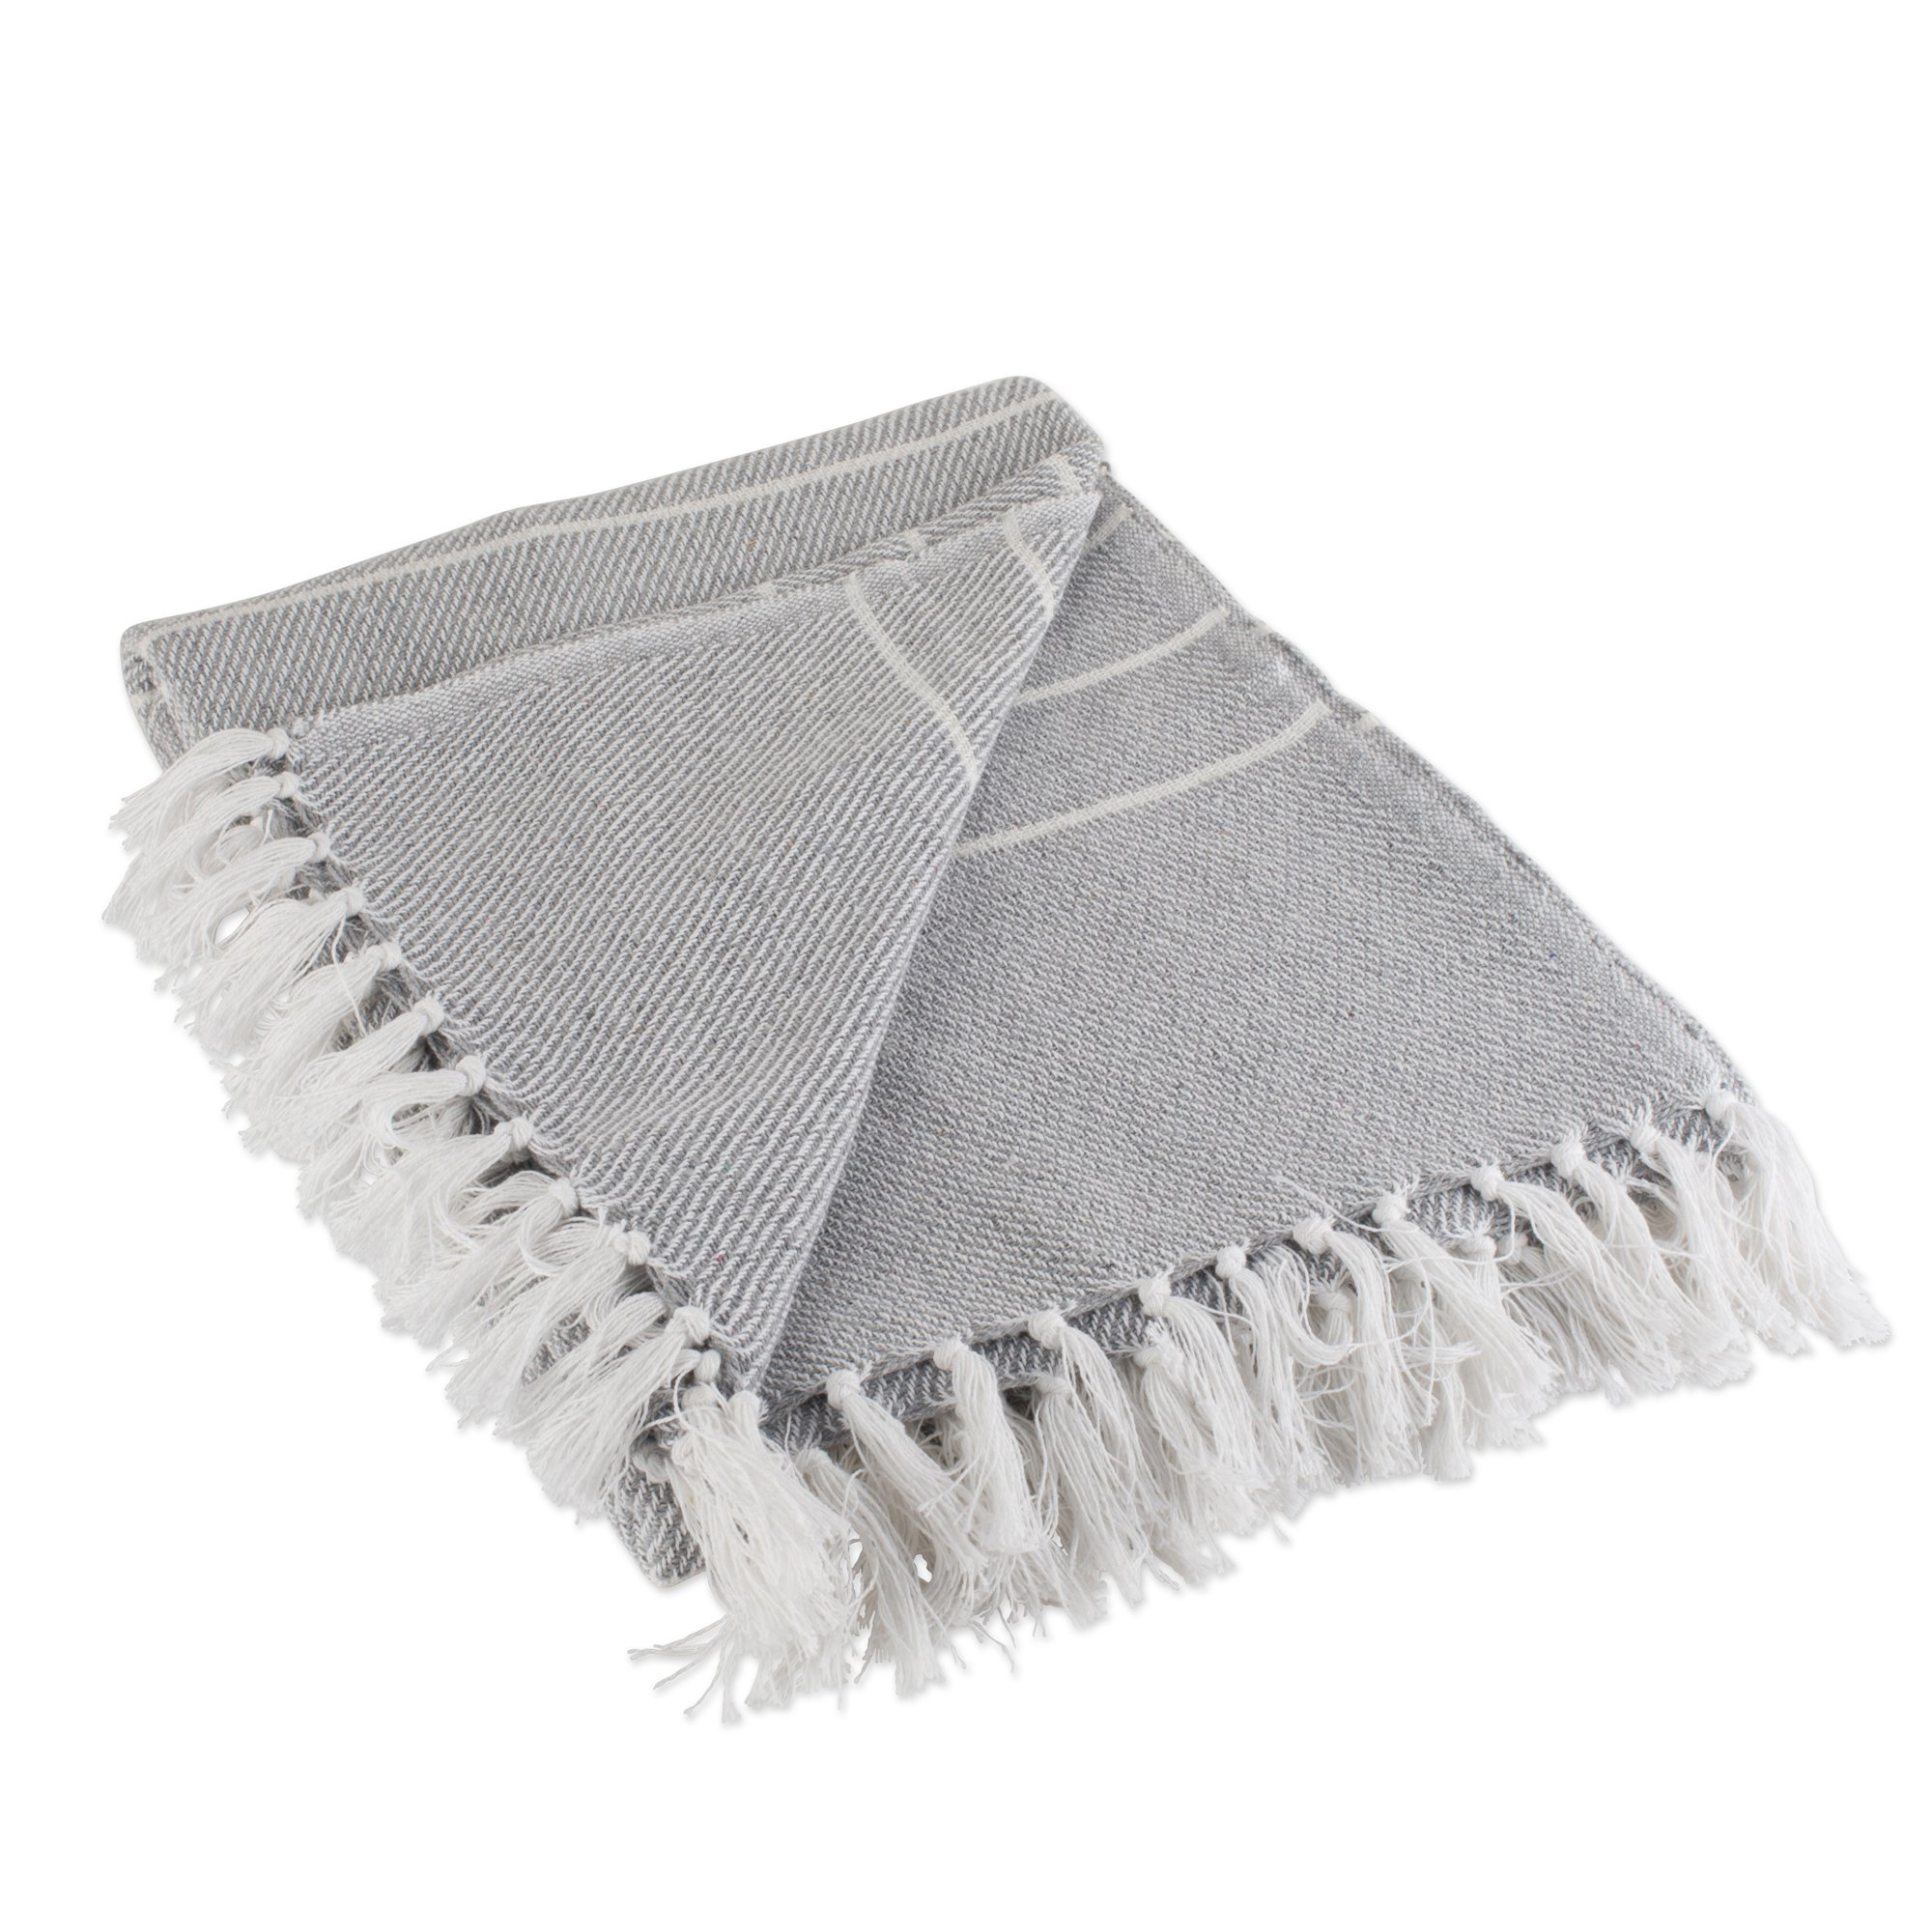 DII Rustic Farmhouse Cotton Thin White Striped Blanket Throw with Fringe for Chair, Couch, Picnic, Camping, Beach, Everyday Use, 50 x 60 - Gray